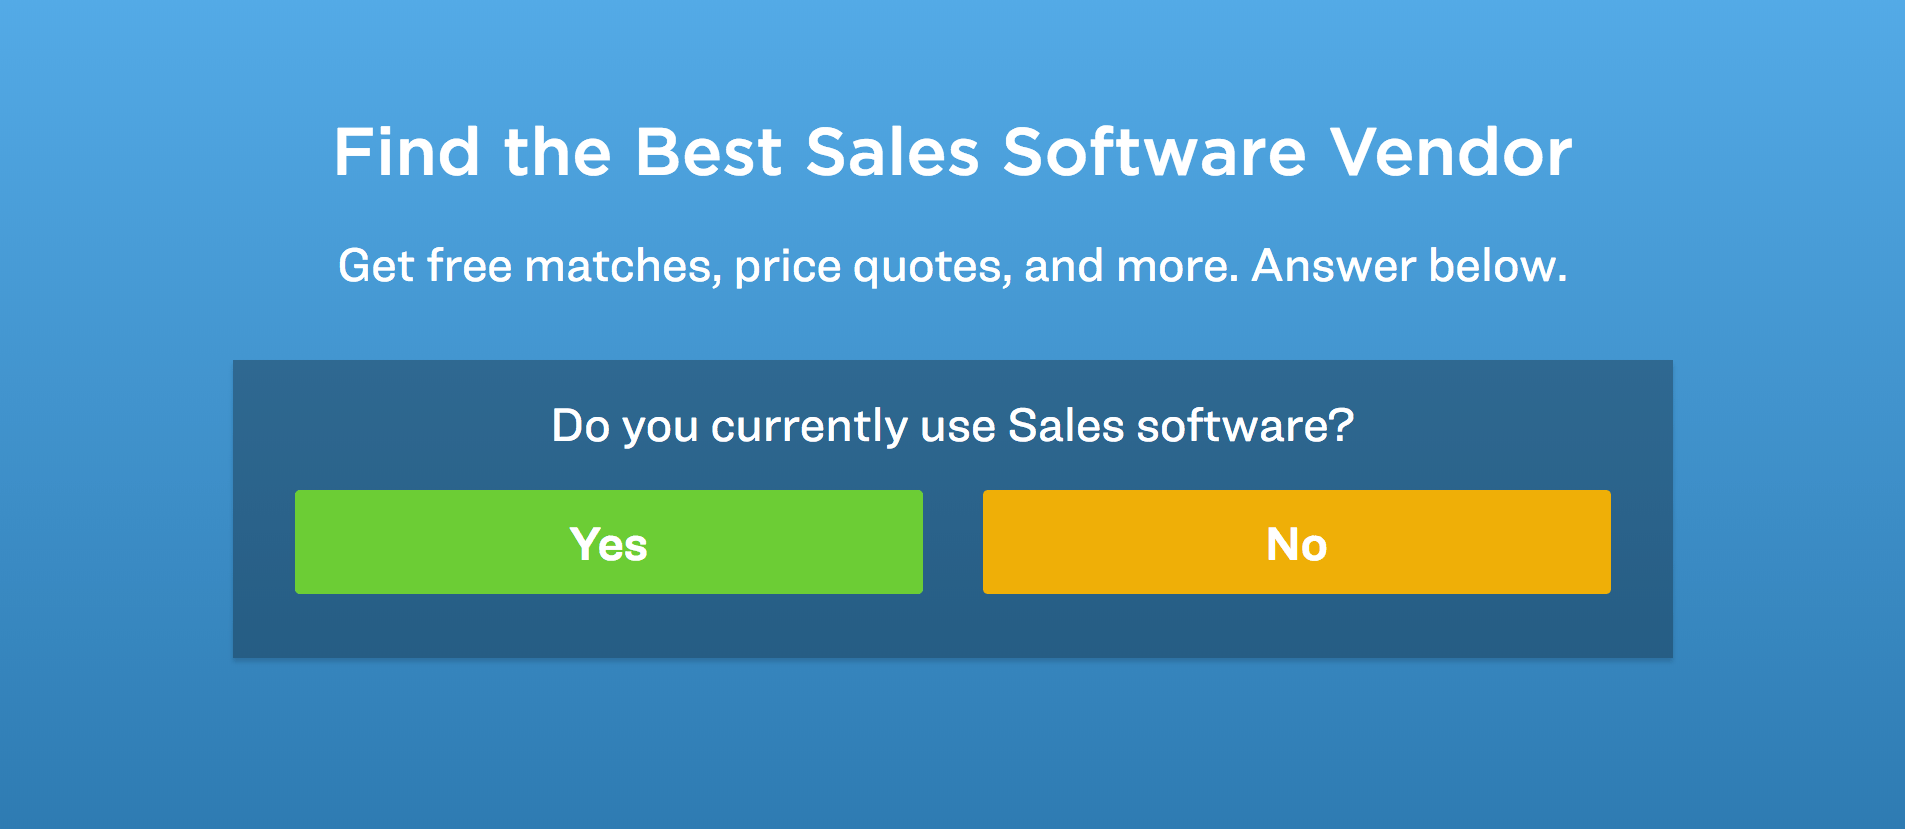 11 Creative Sales Contest Ideas and Why They Work